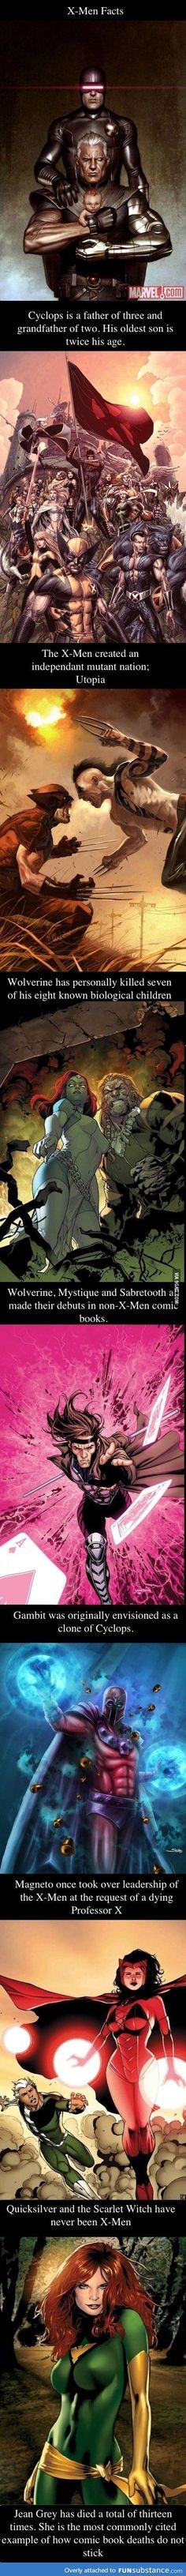 X-men facts compilation